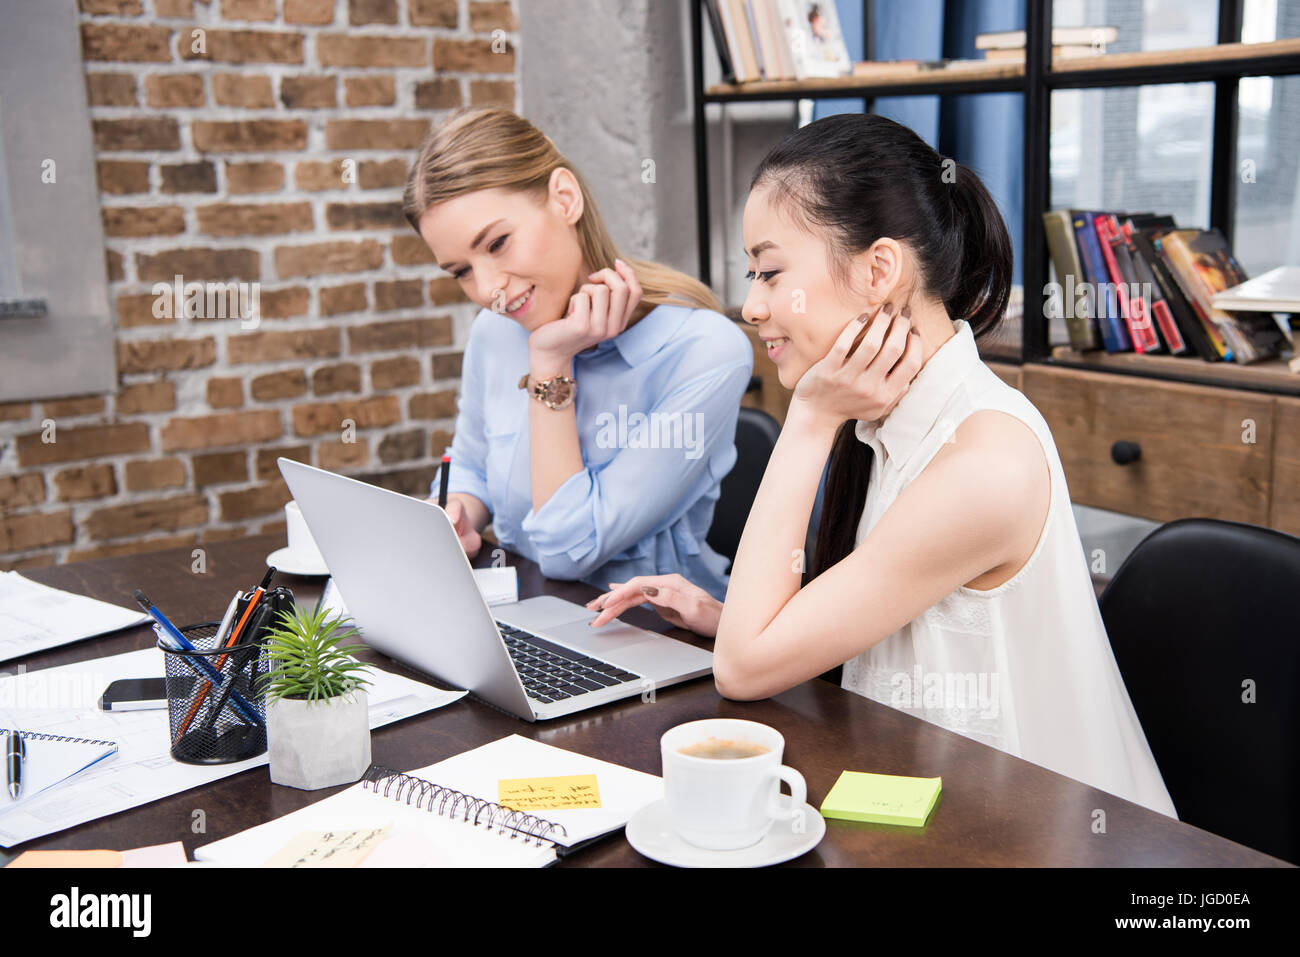 smiling multicultural businesswomen working with laptop and sitting at workplace - Stock Image